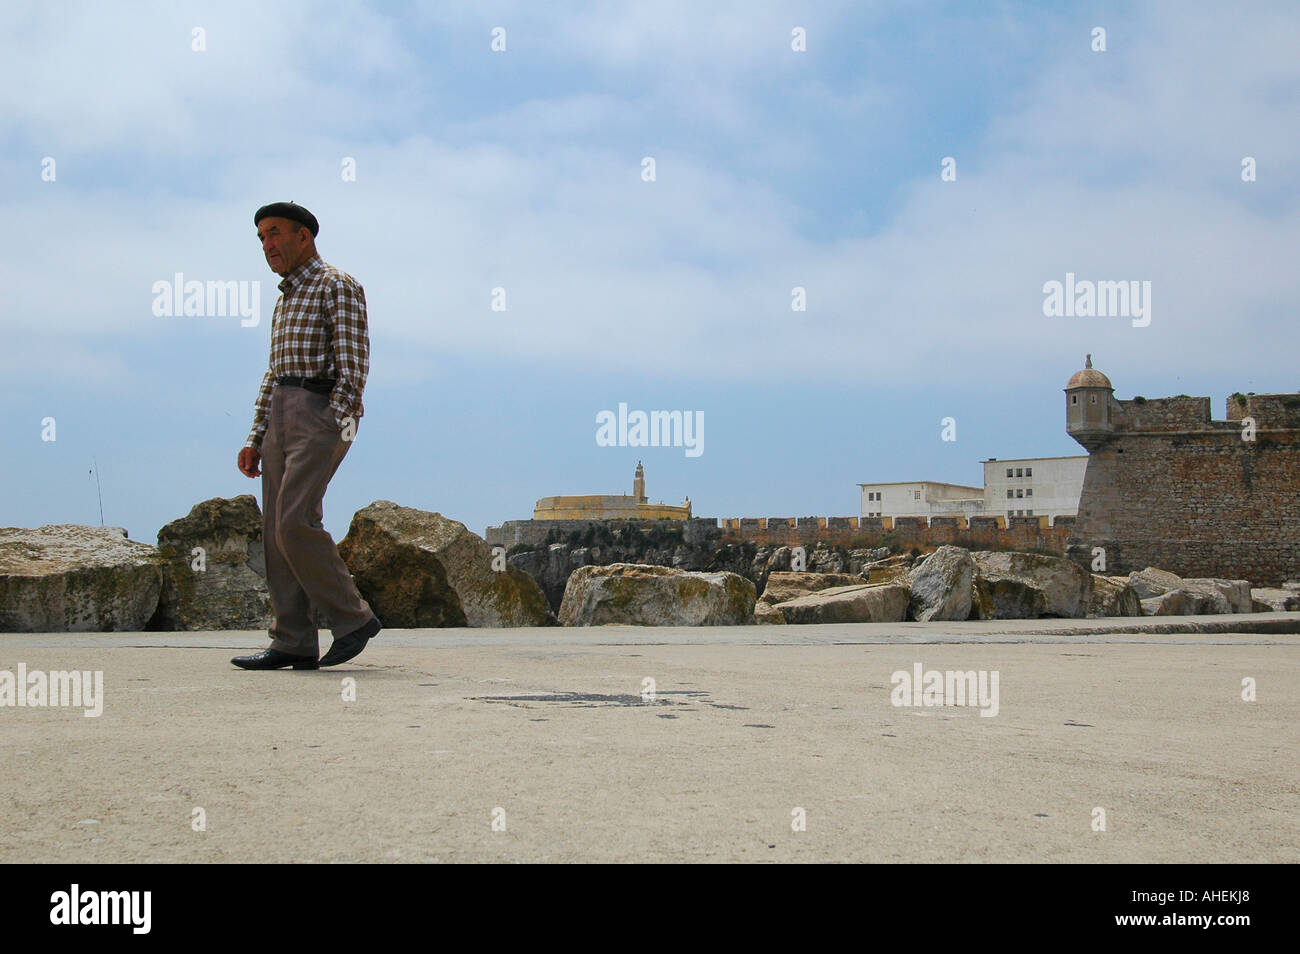 An elderly Portuguese man walking along the pier of the old harbor in Peniche a seaside city located in Oeste Subregion in Portugal. - Stock Image